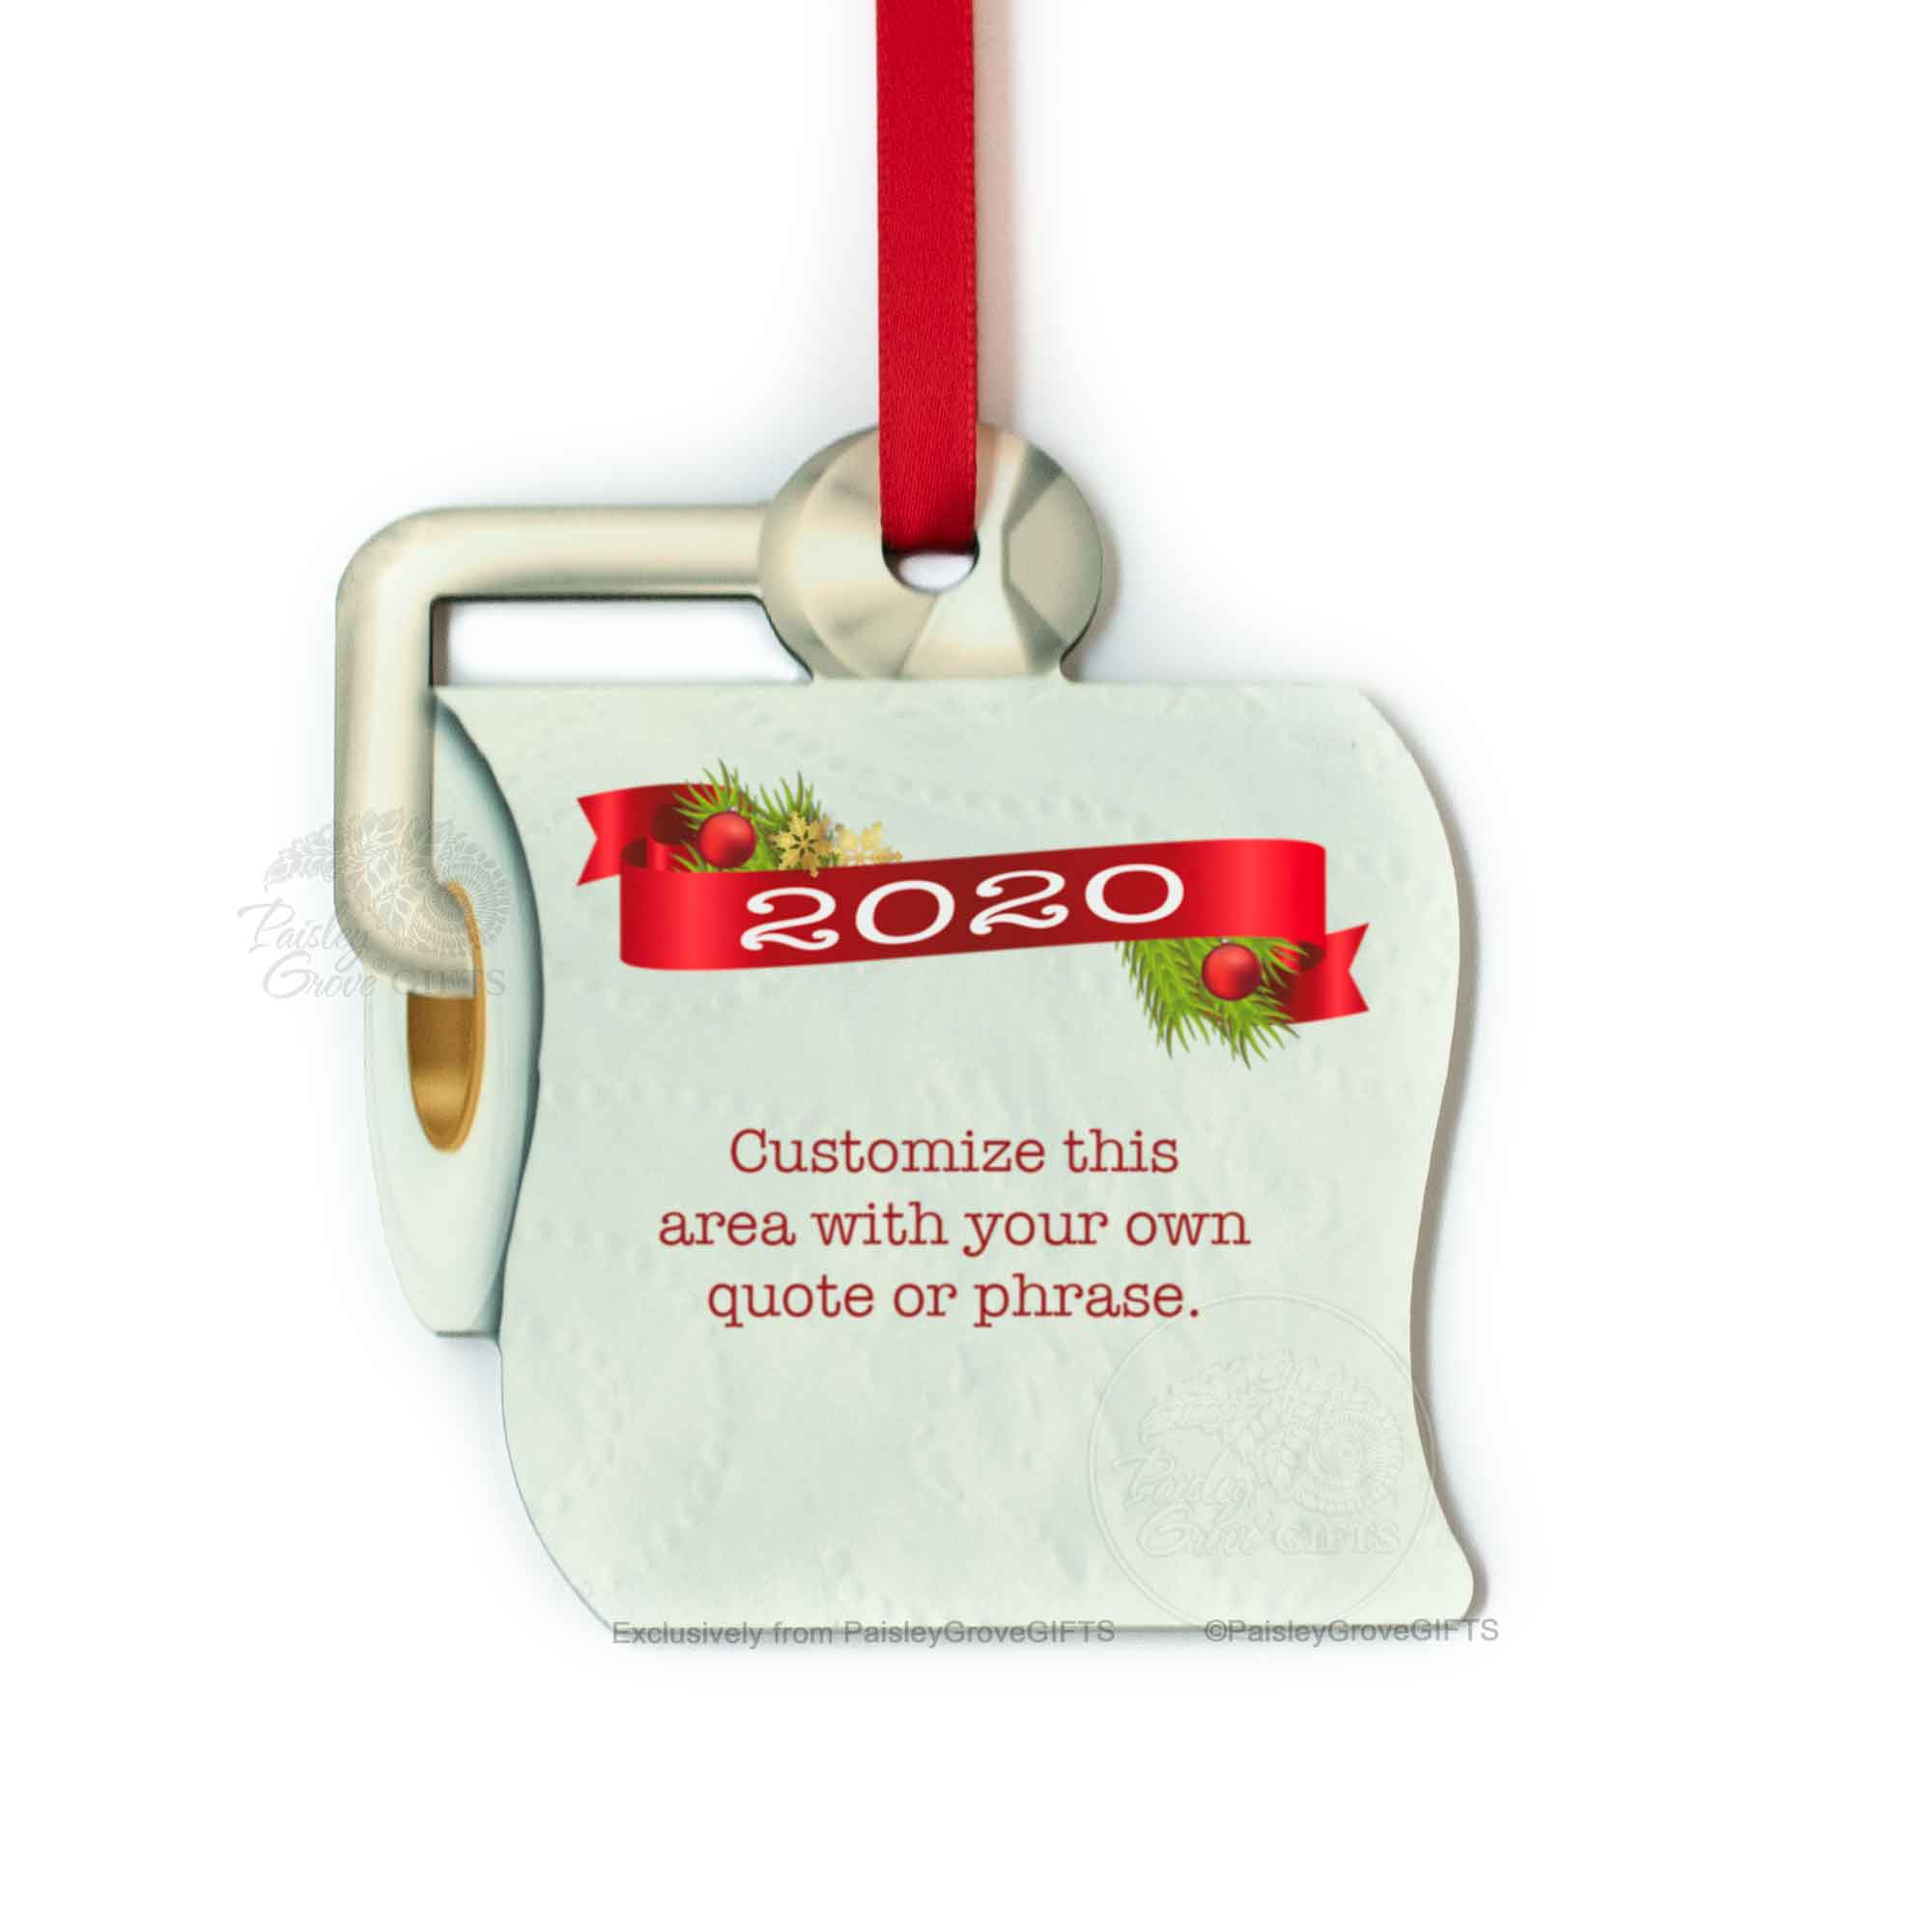 Copyright PaisleyGroveGIFTS S525p Funny Toilet Paper Christmas Ornament 2020 Custom Quote